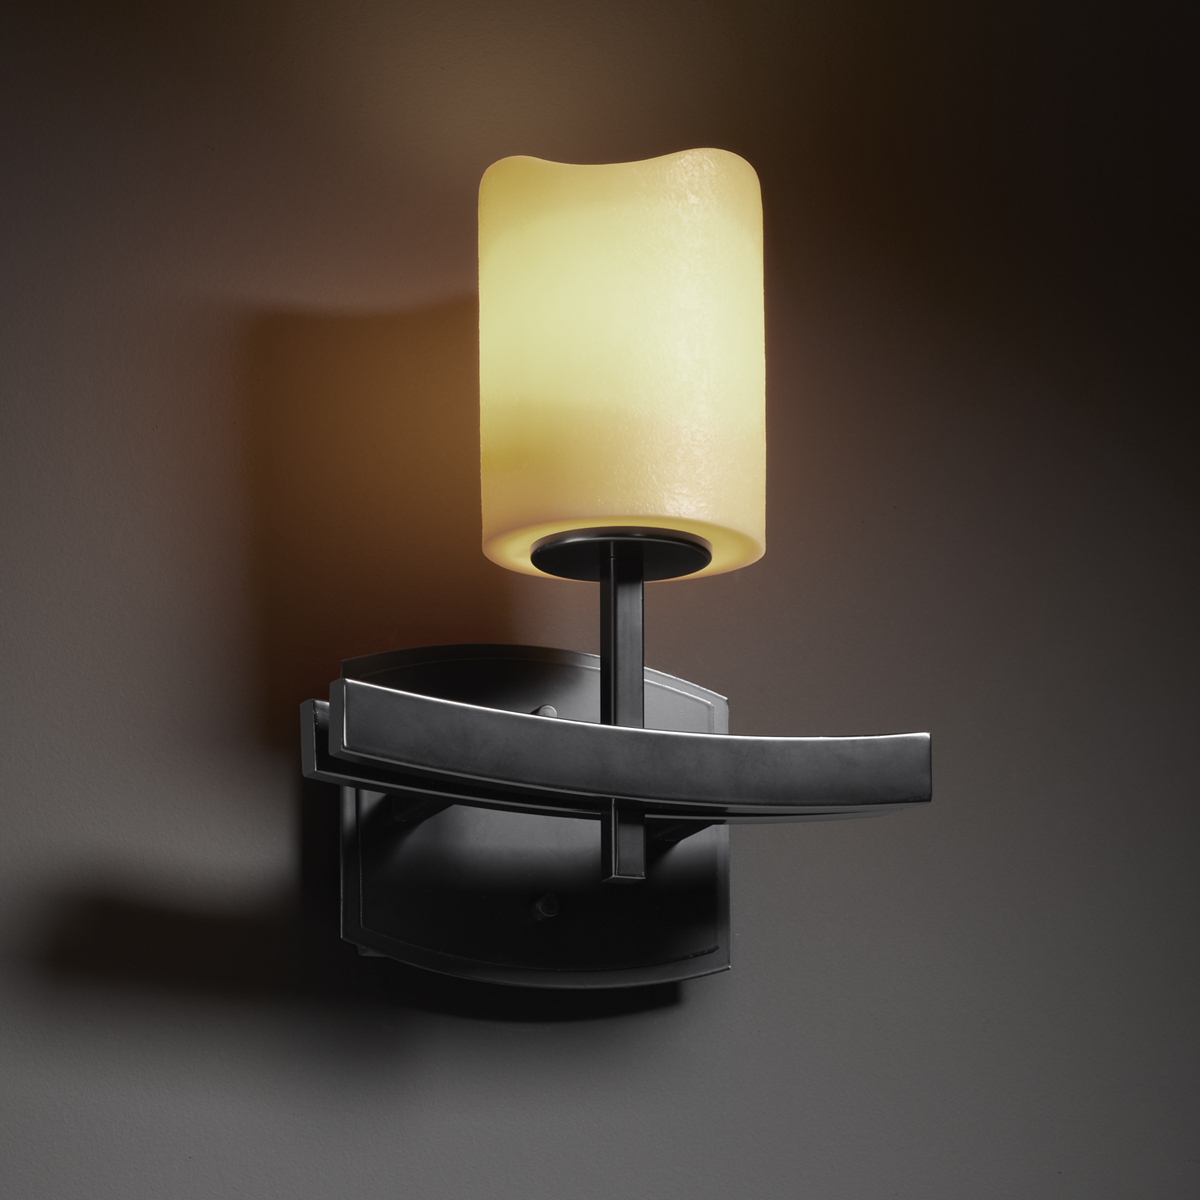 Justice Design (CNDL-8591) Archway 1-Light Wall Sconce from the CandleAria Collection